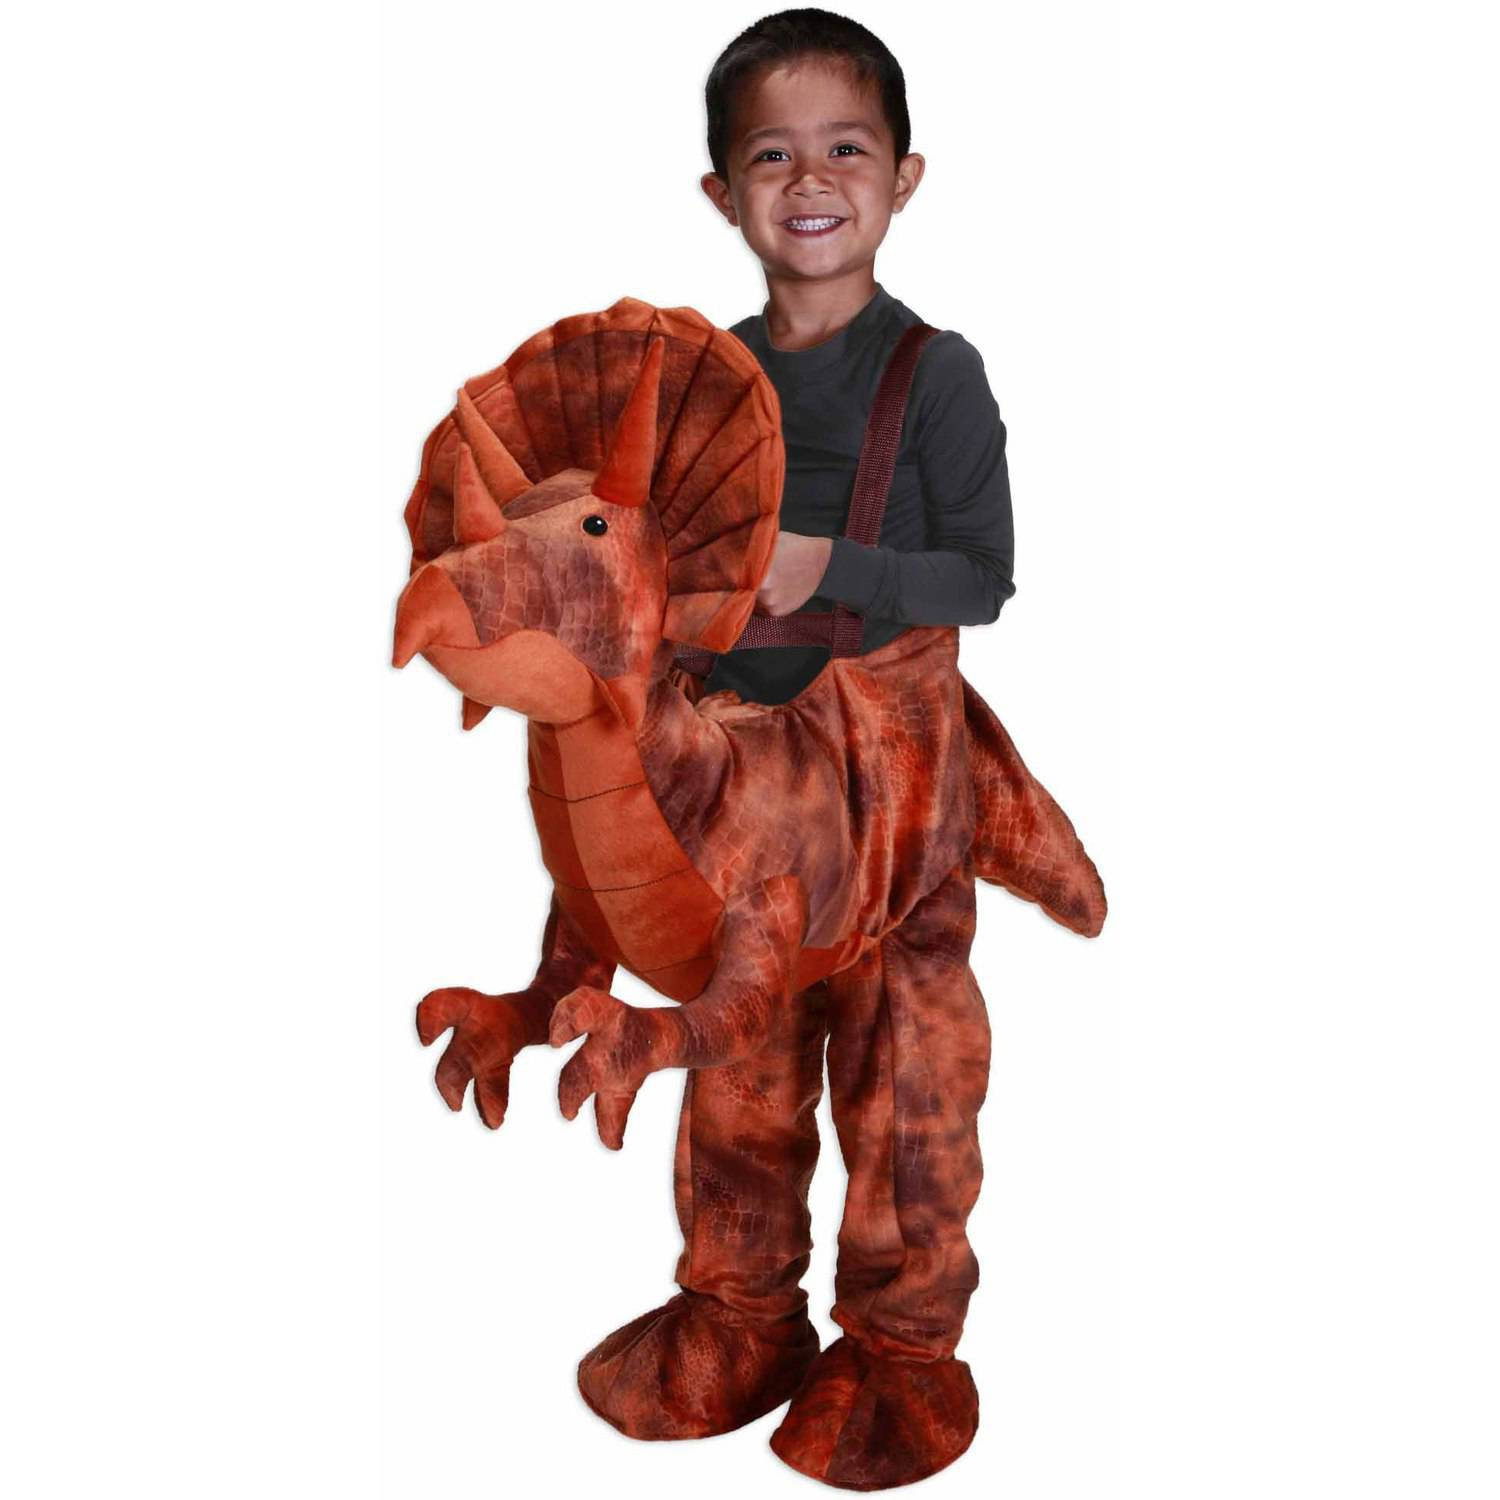 Brown Dino Rider Toddler Halloween Dress Up / Role Play Costume - Walmart .com  sc 1 st  Walmart.com & Brown Dino Rider Toddler Halloween Dress Up / Role Play Costume ...